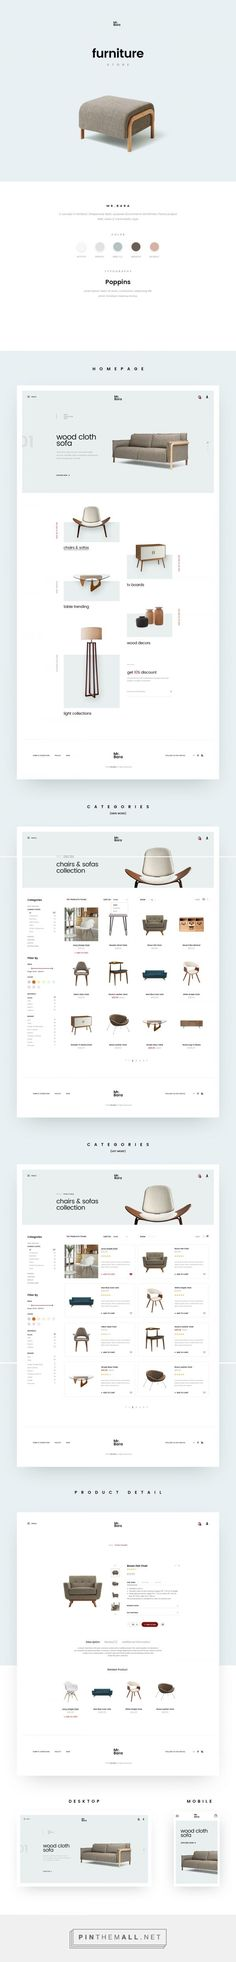 Furniture Site / Web Design / Interaction / UI Design / UX Design / Minimalist / E-Commerce / Interior Design / E-Shop / Clean / Business / Store / Inspiration / Ideas / Layout / Trends / Navigation / Pastel / Beautiful / Modern / Interior / Elegant / White Space. If you're a user experience professional, listen to The UX Blog Podcast on iTunes.